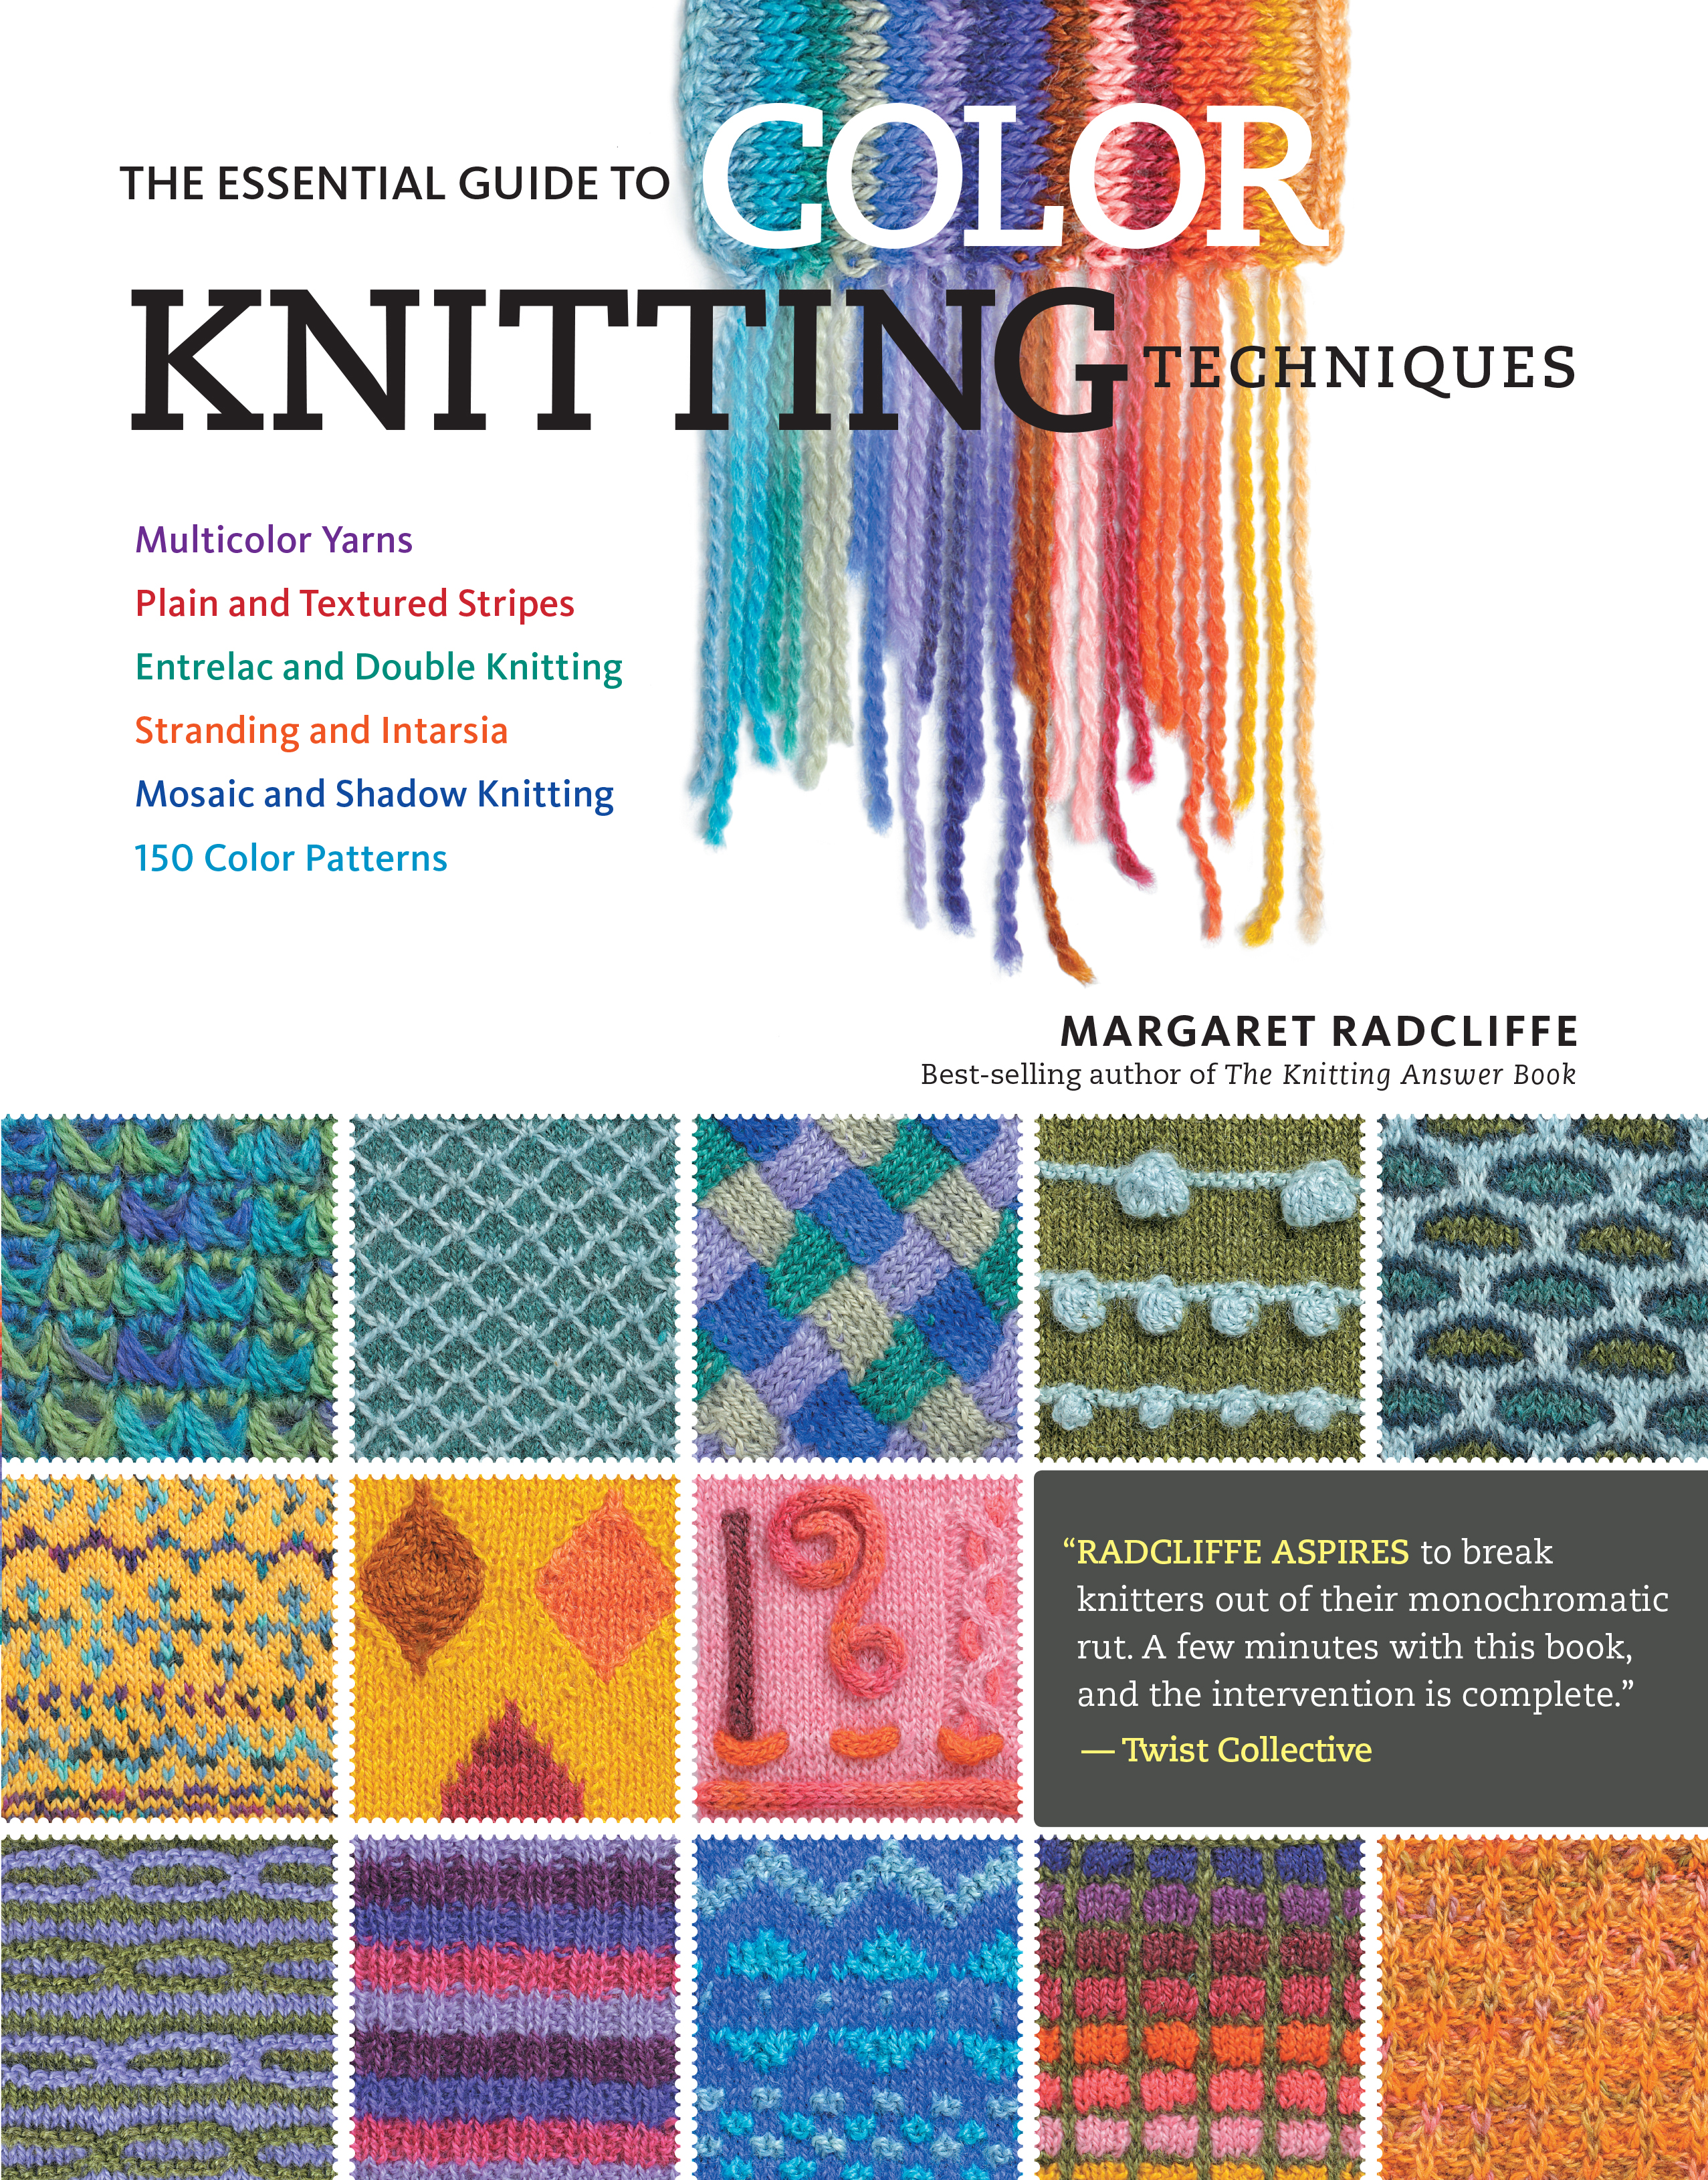 The Essential Guide to Color Knitting Techniques Multicolor Yarns, Plain and Textured Stripes, Entrelac and Double Knitting, Stranding and Intarsia, Mosaic and Shadow Knitting, 150 Color Patterns - Margaret Radcliffe